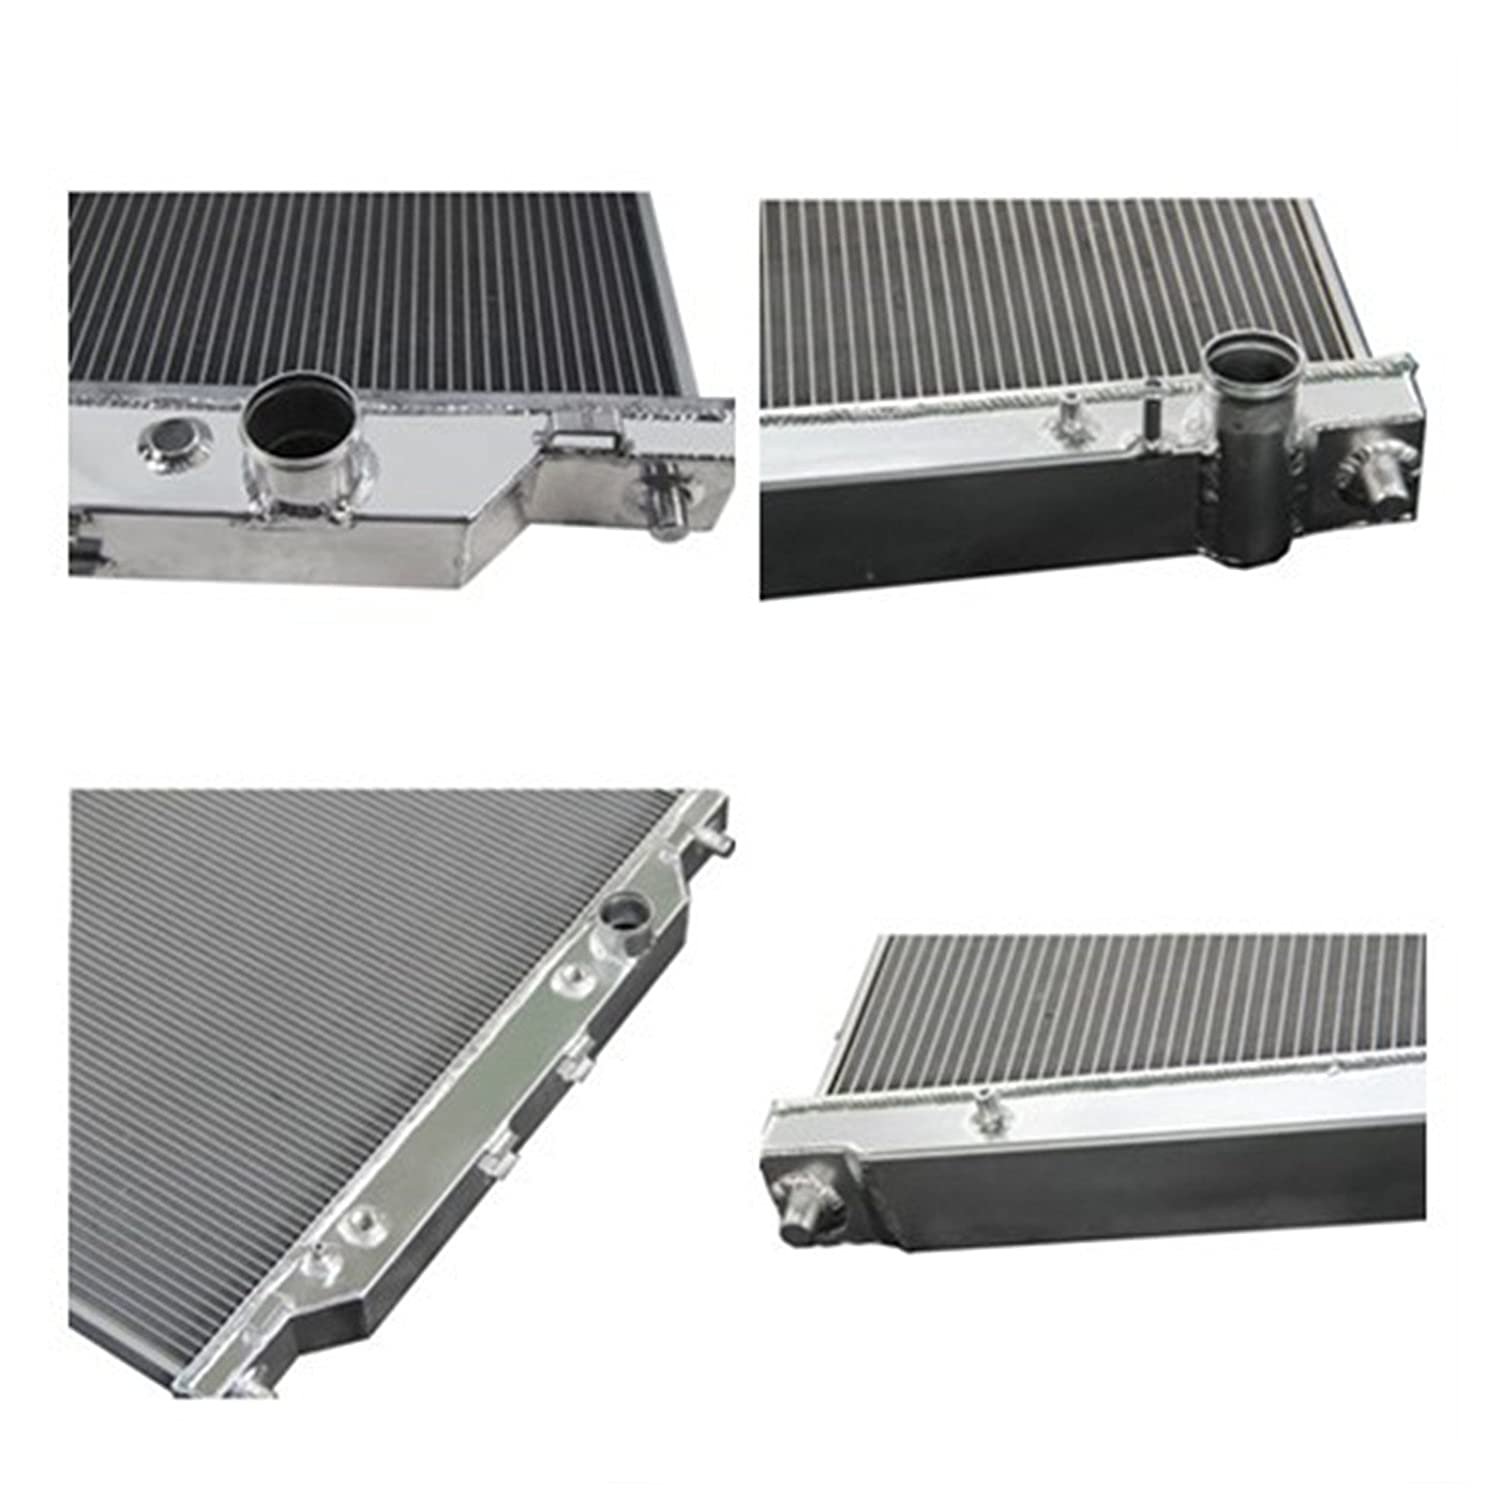 6.0L Turbo Diesel Powerstroke Engine 2 Row Dual-Core Aluminum Radiator for Ford F250 //F350 //Excursion 2003-07